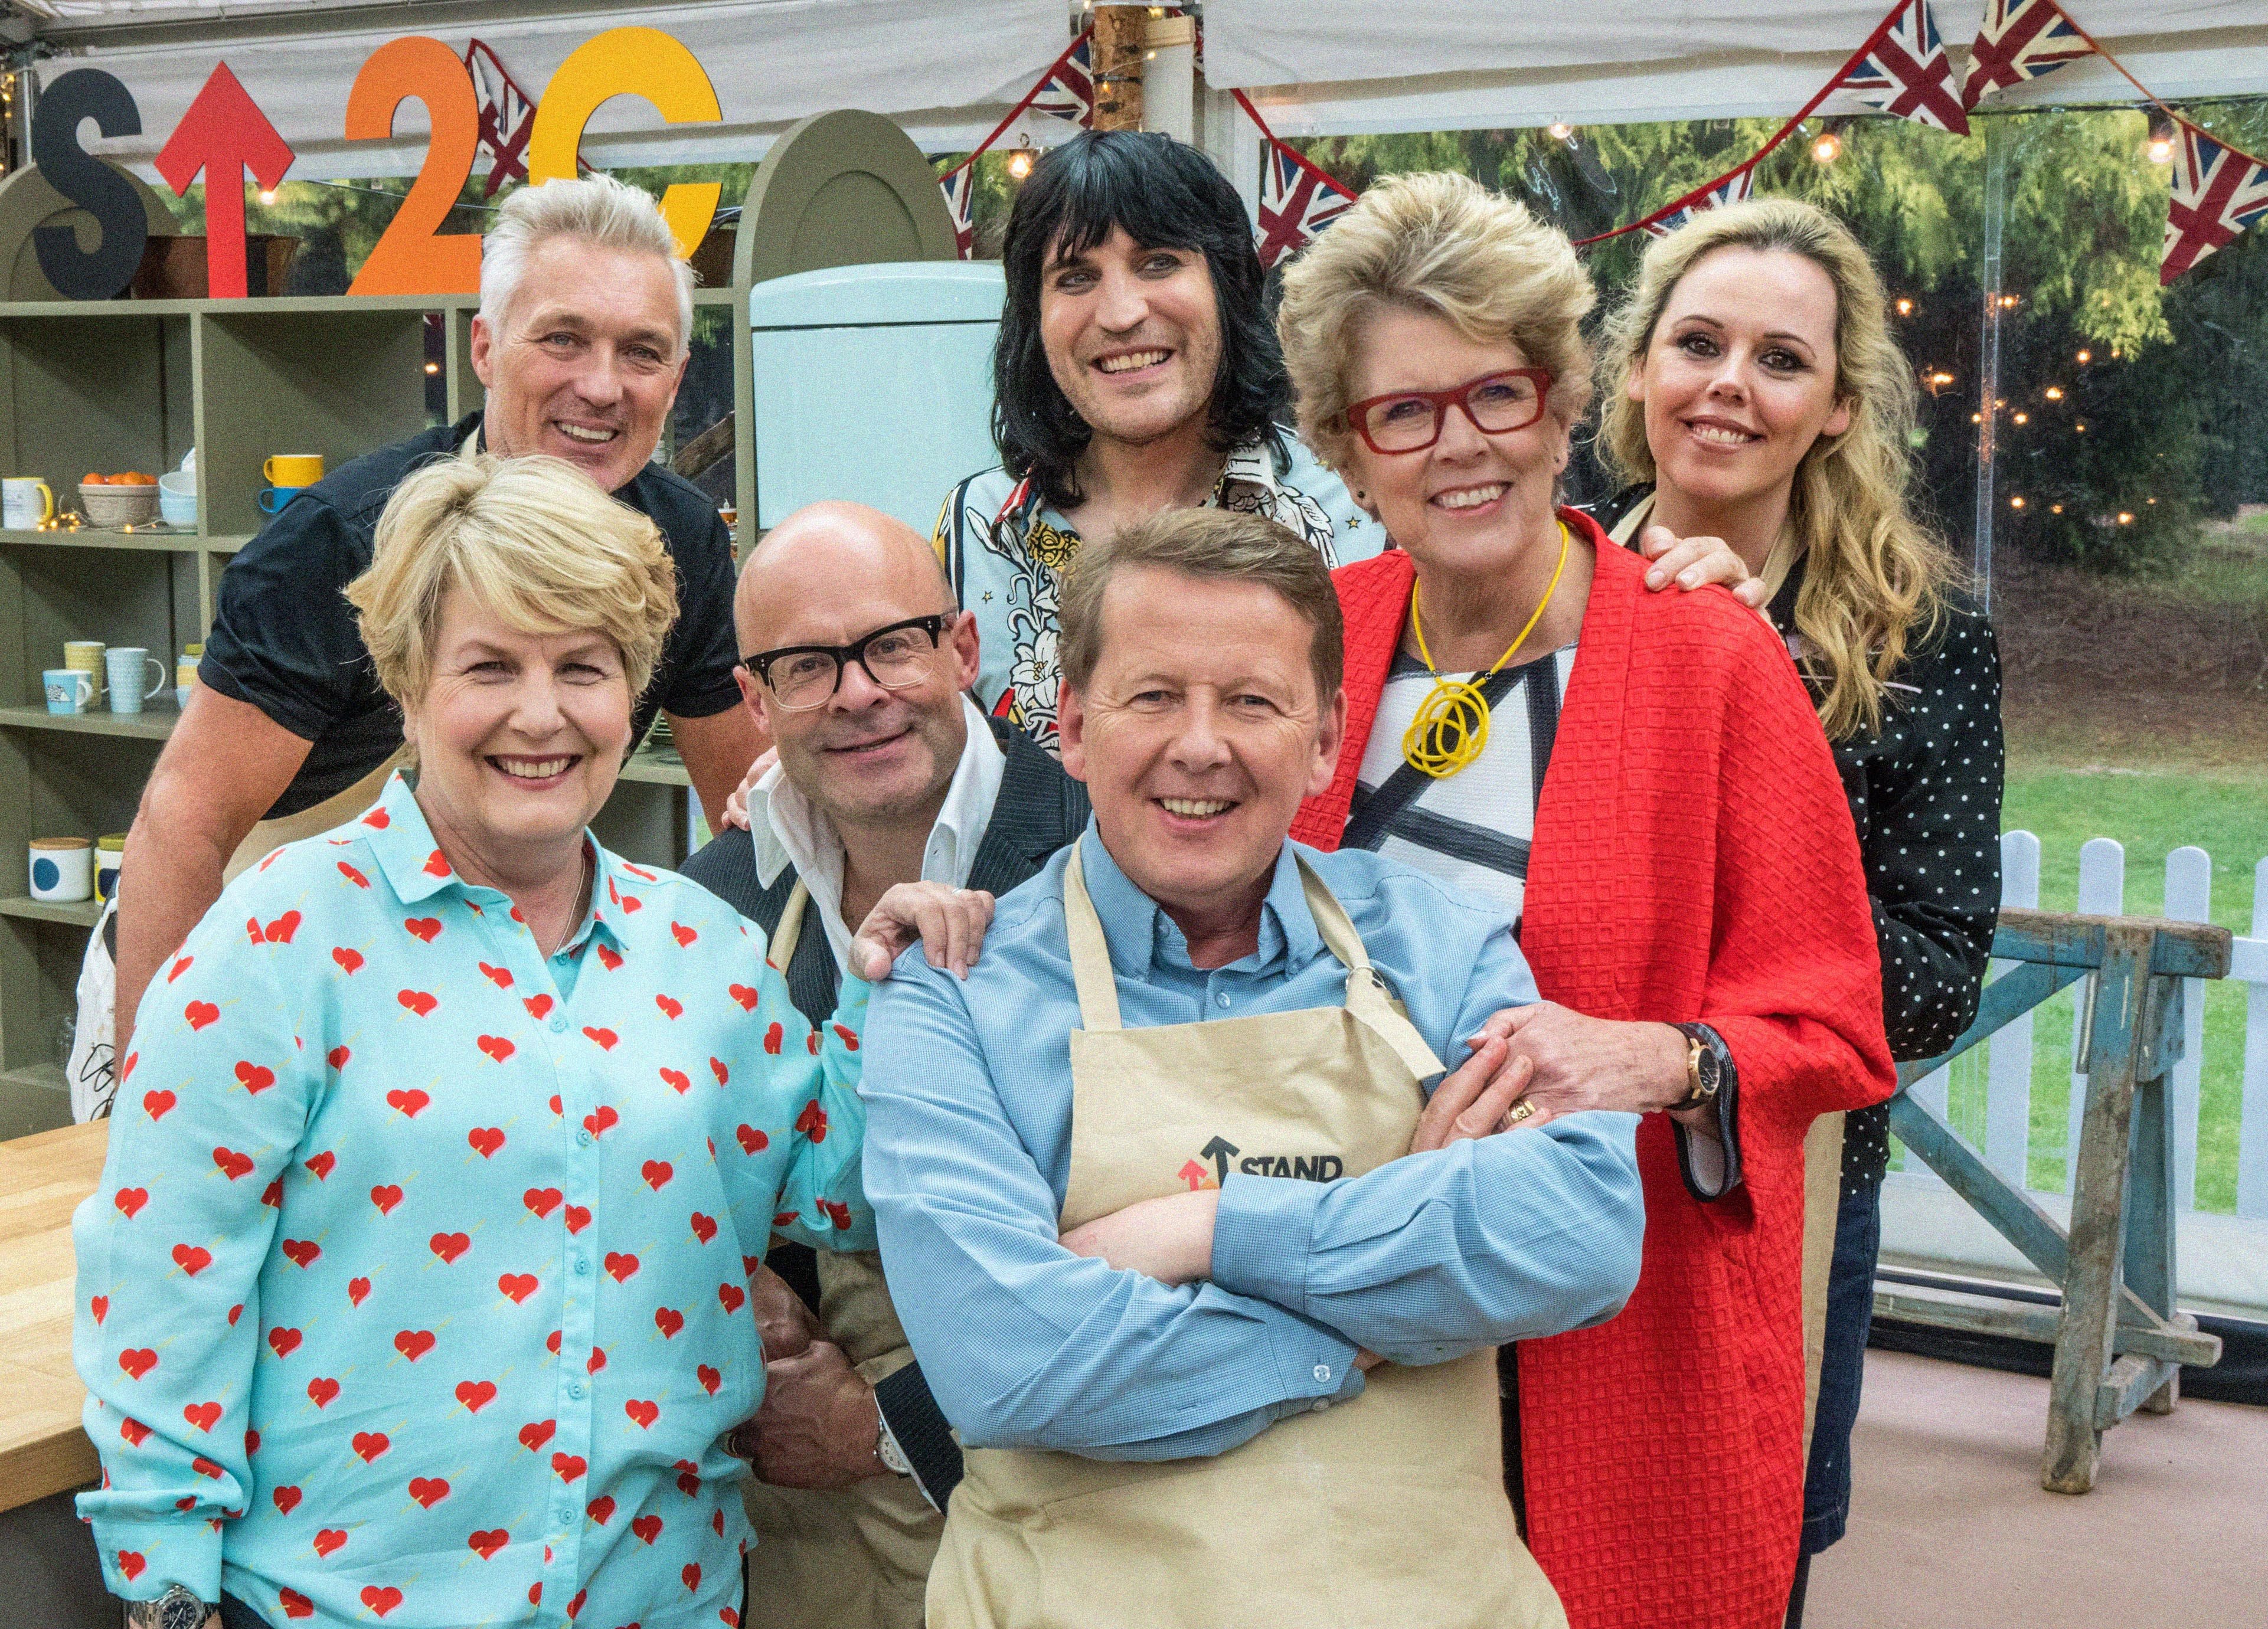 Great British Bake Off: Stand To Cancer 2017: - Bill, Harry, Martin and Roisin, with Sandi, Noel and Paul